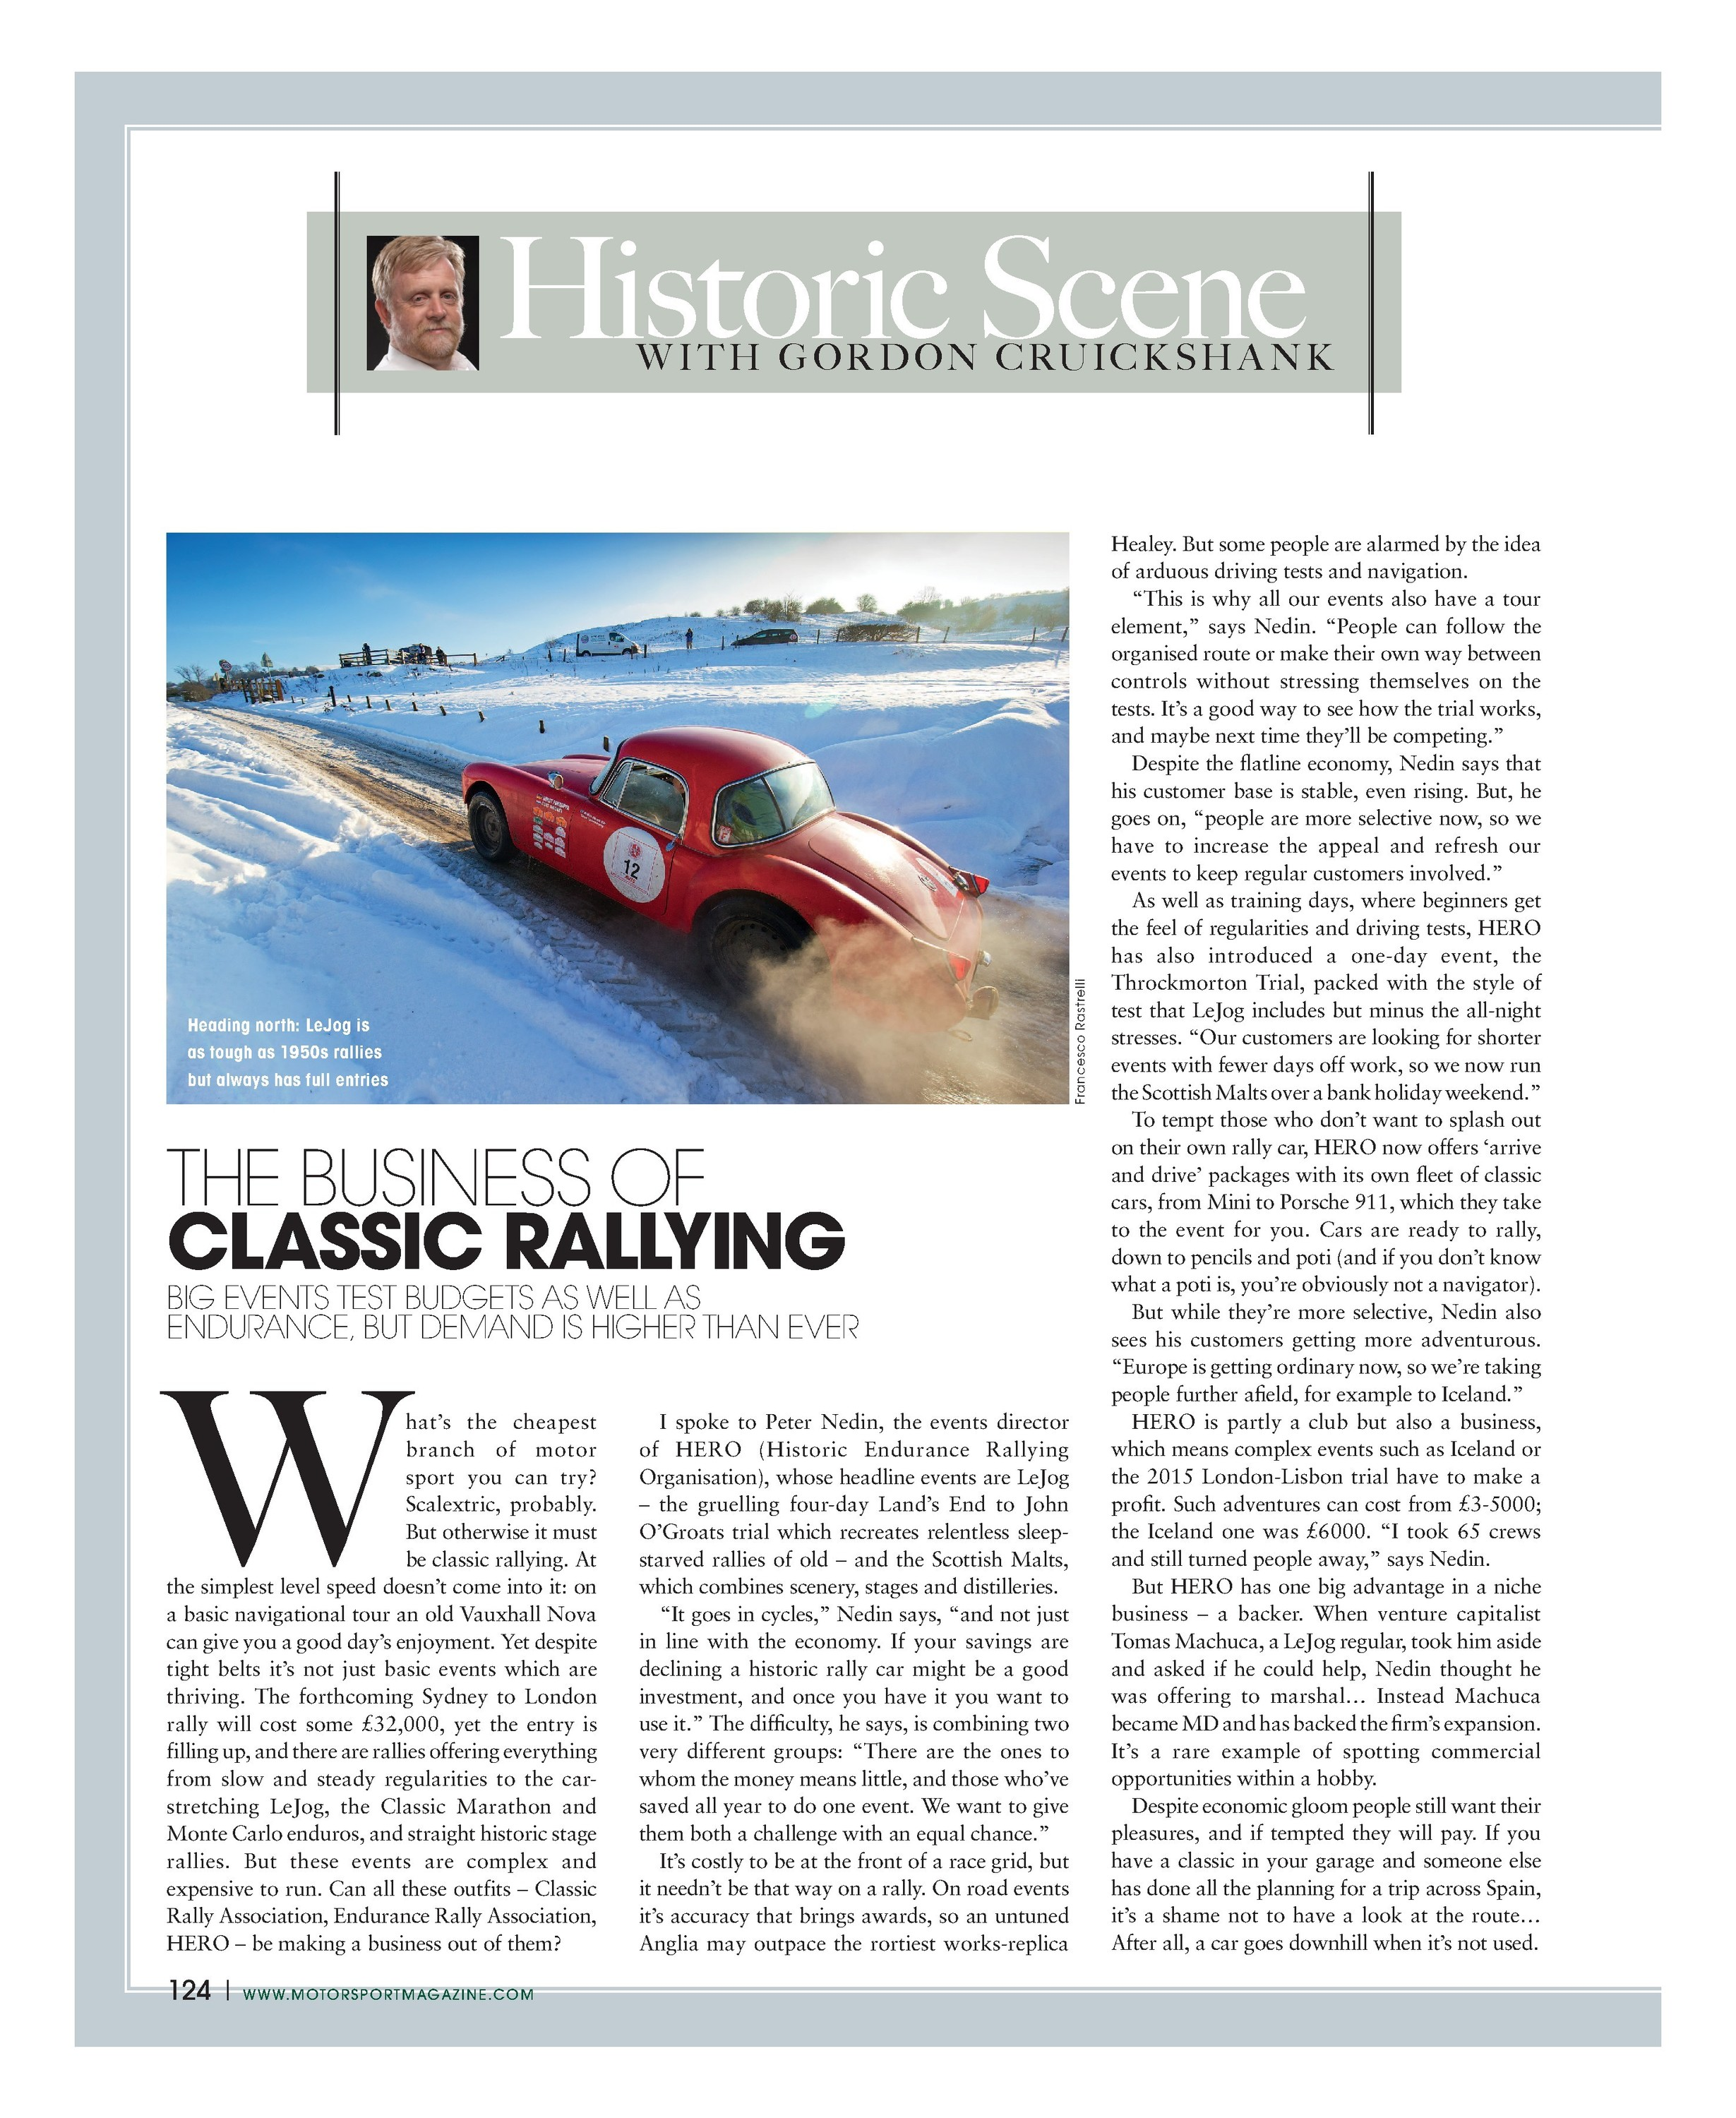 The business of classic rallying | Motor Sport Magazine Archive